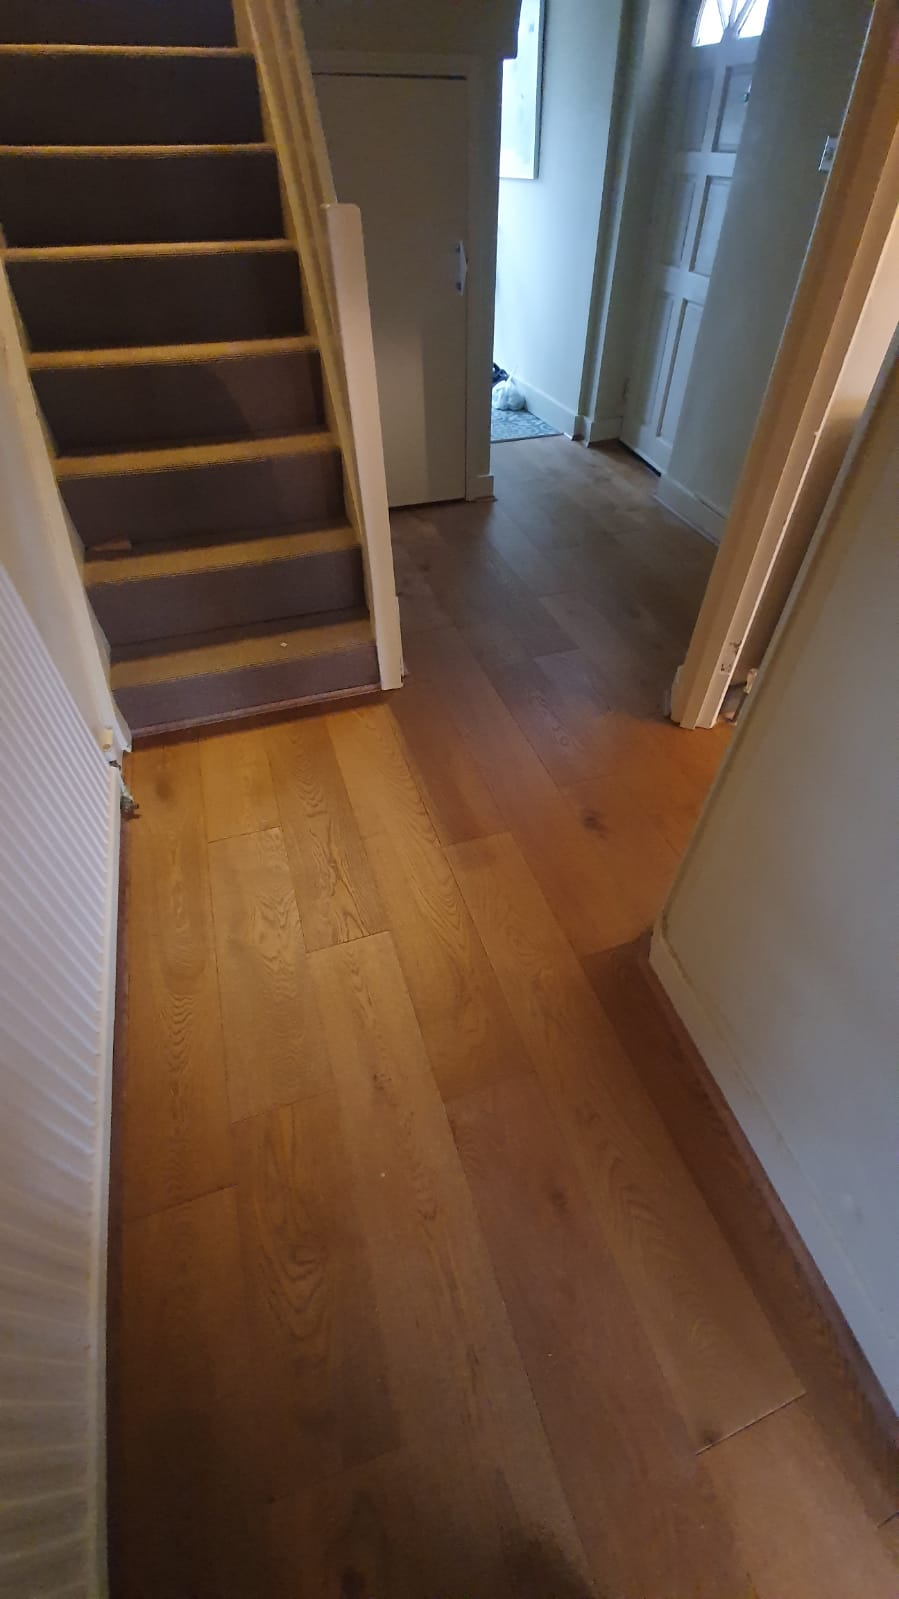 Furlong Wood Flooring Next Step 189 6513 2